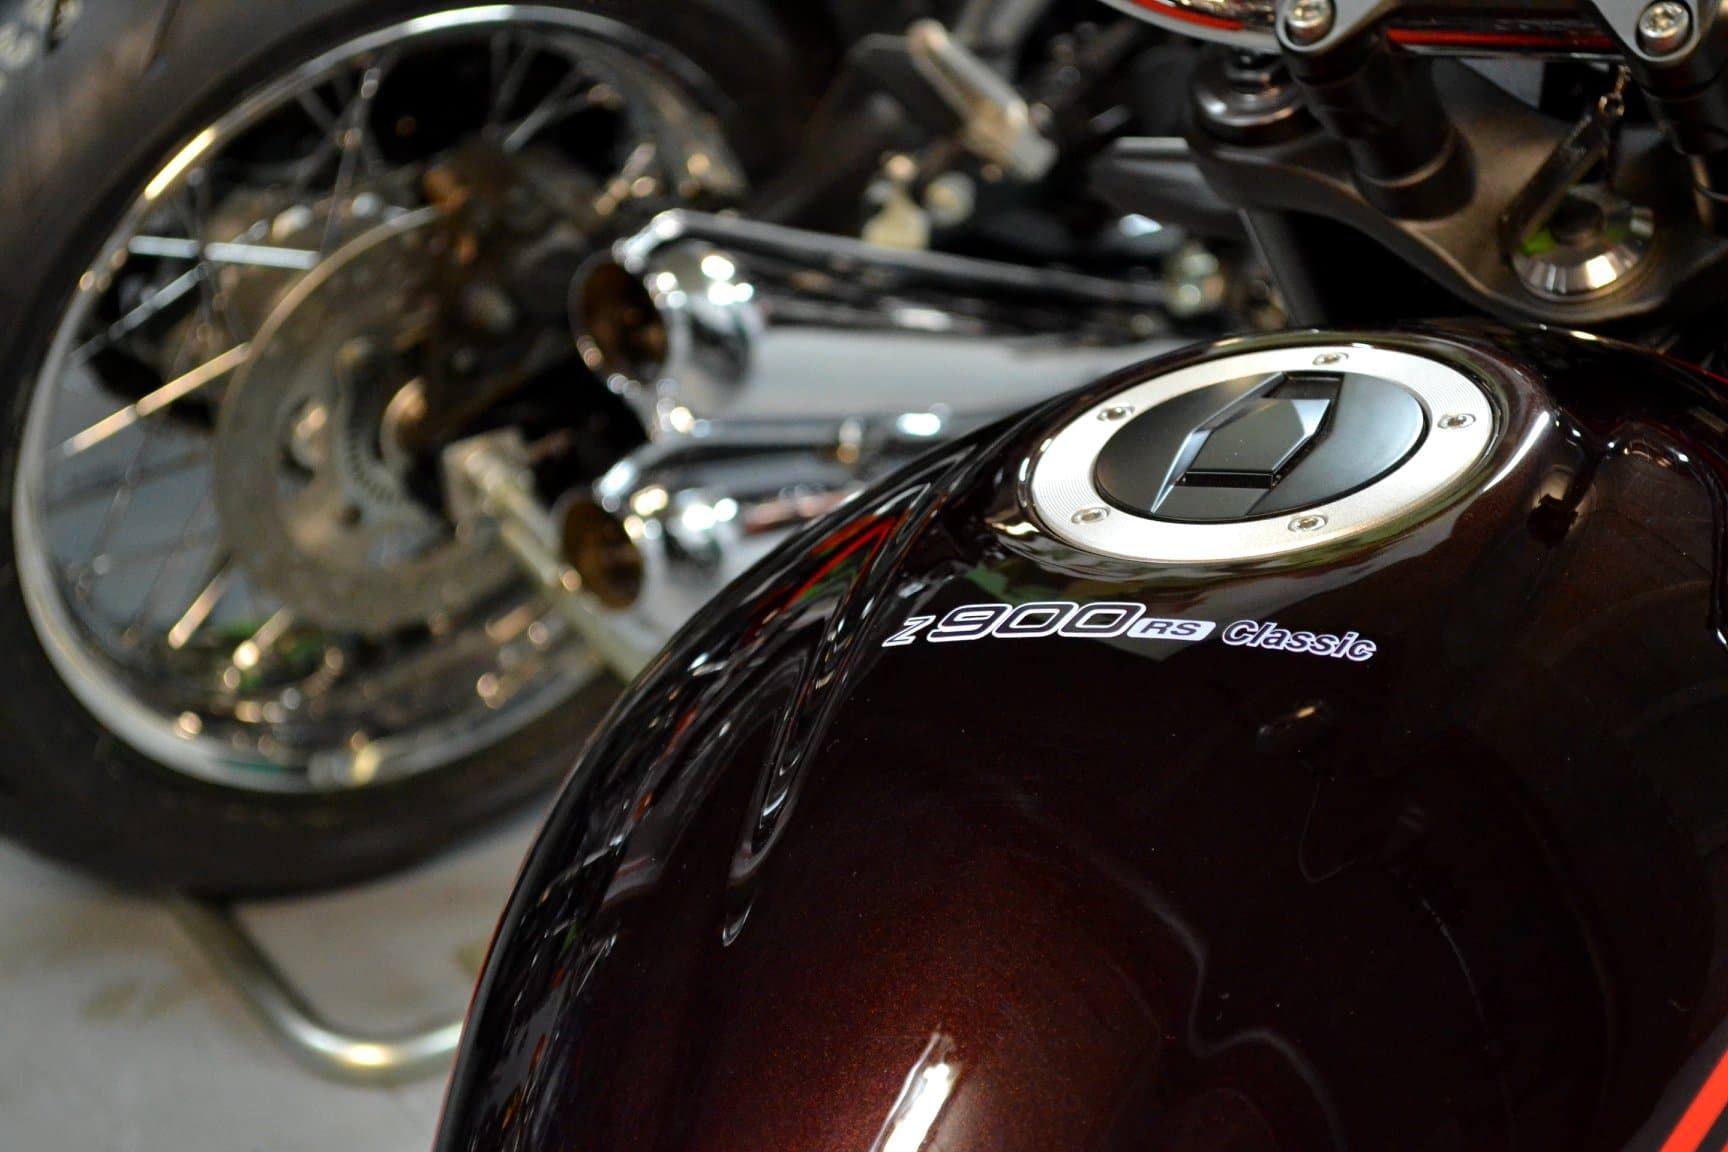 Z900 RS Classic #3 001